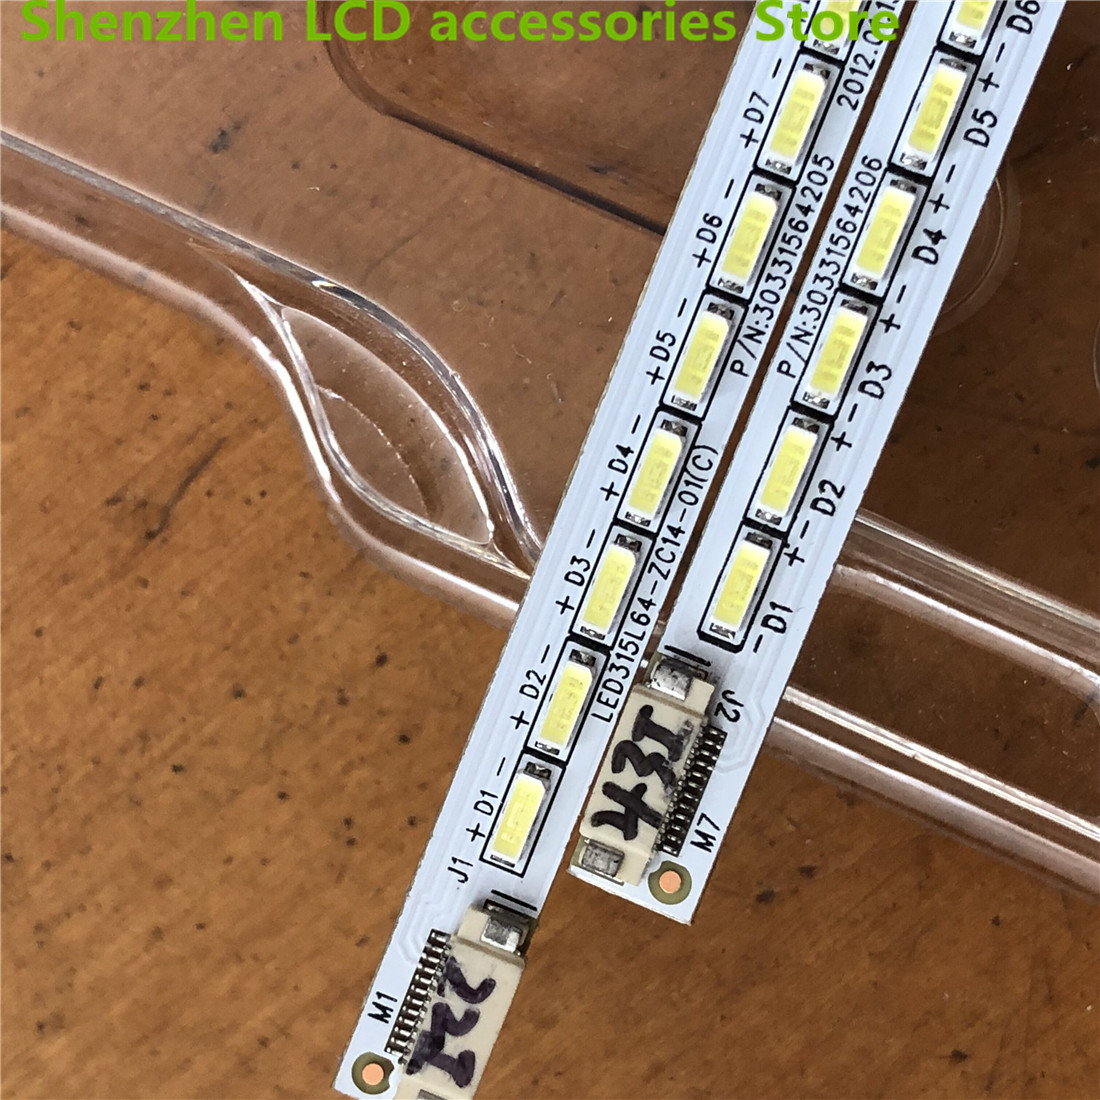 2Pieces/lot    LE32MUK1 Lamp Strip LED315L64-ZC14-01 (C) LED315R64-ZC14-01  1PCS=64LED   1PCS=360MM